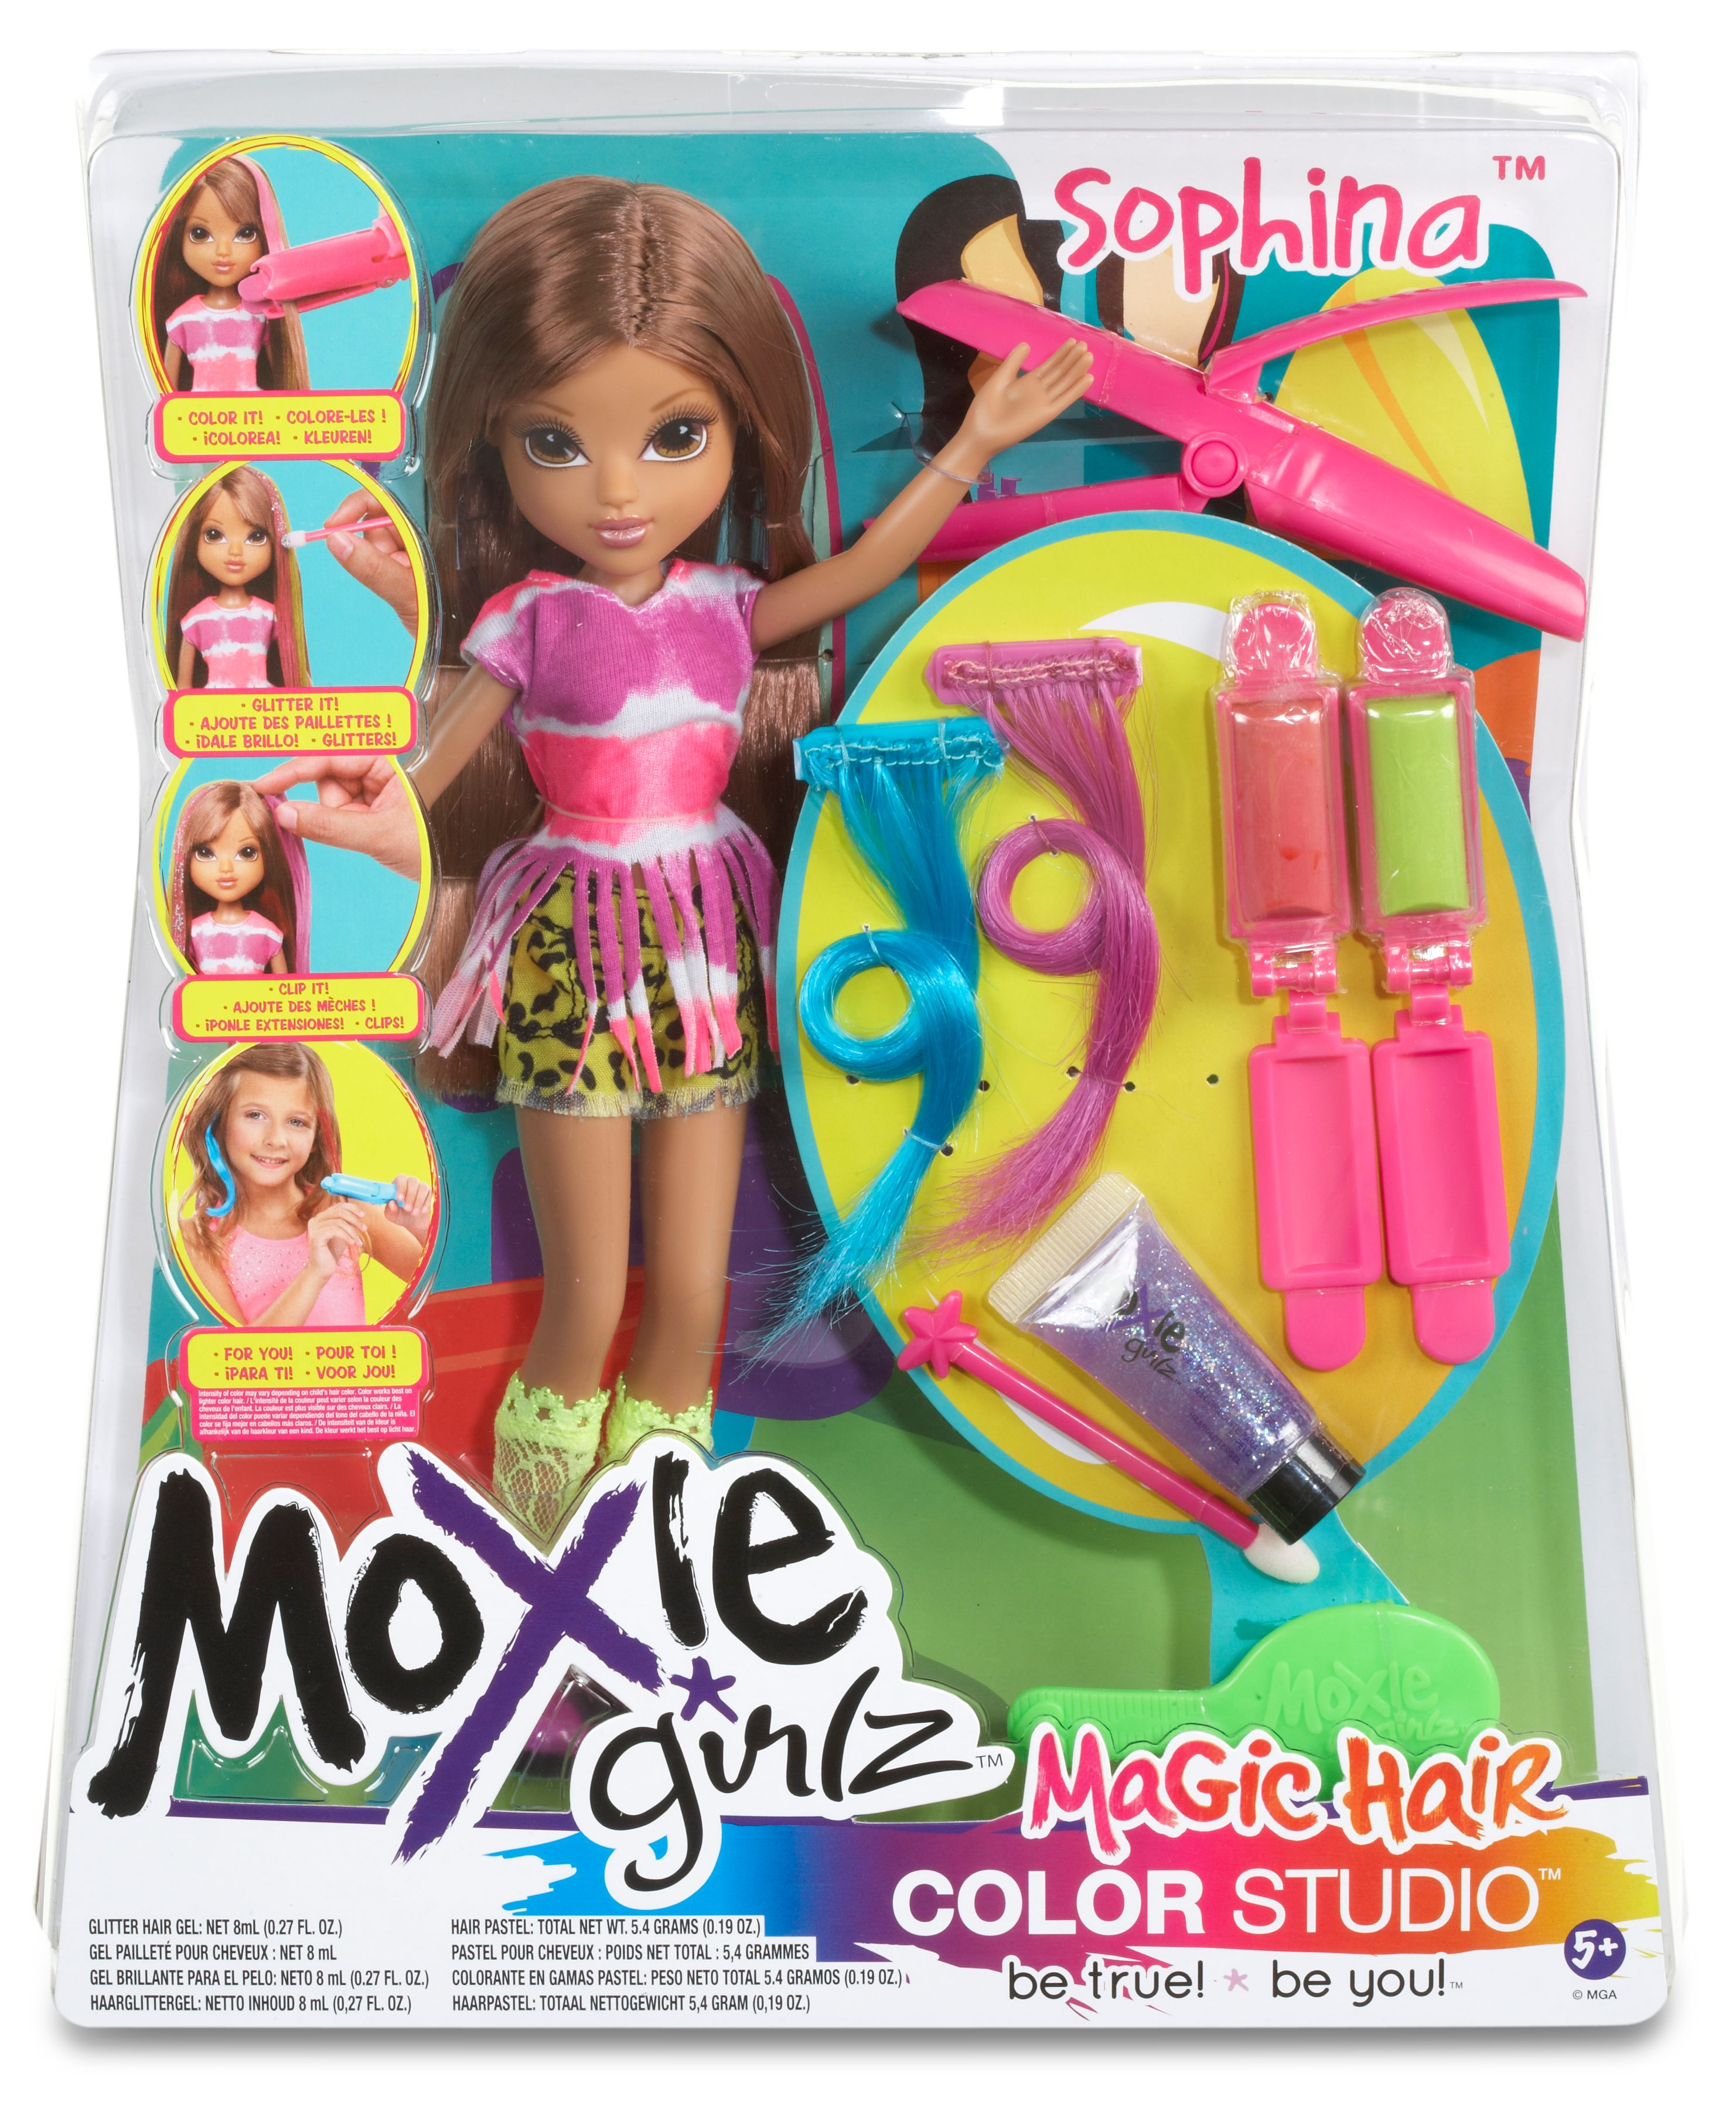 Moxie Girlz Sophina Magic Hair Color Studio